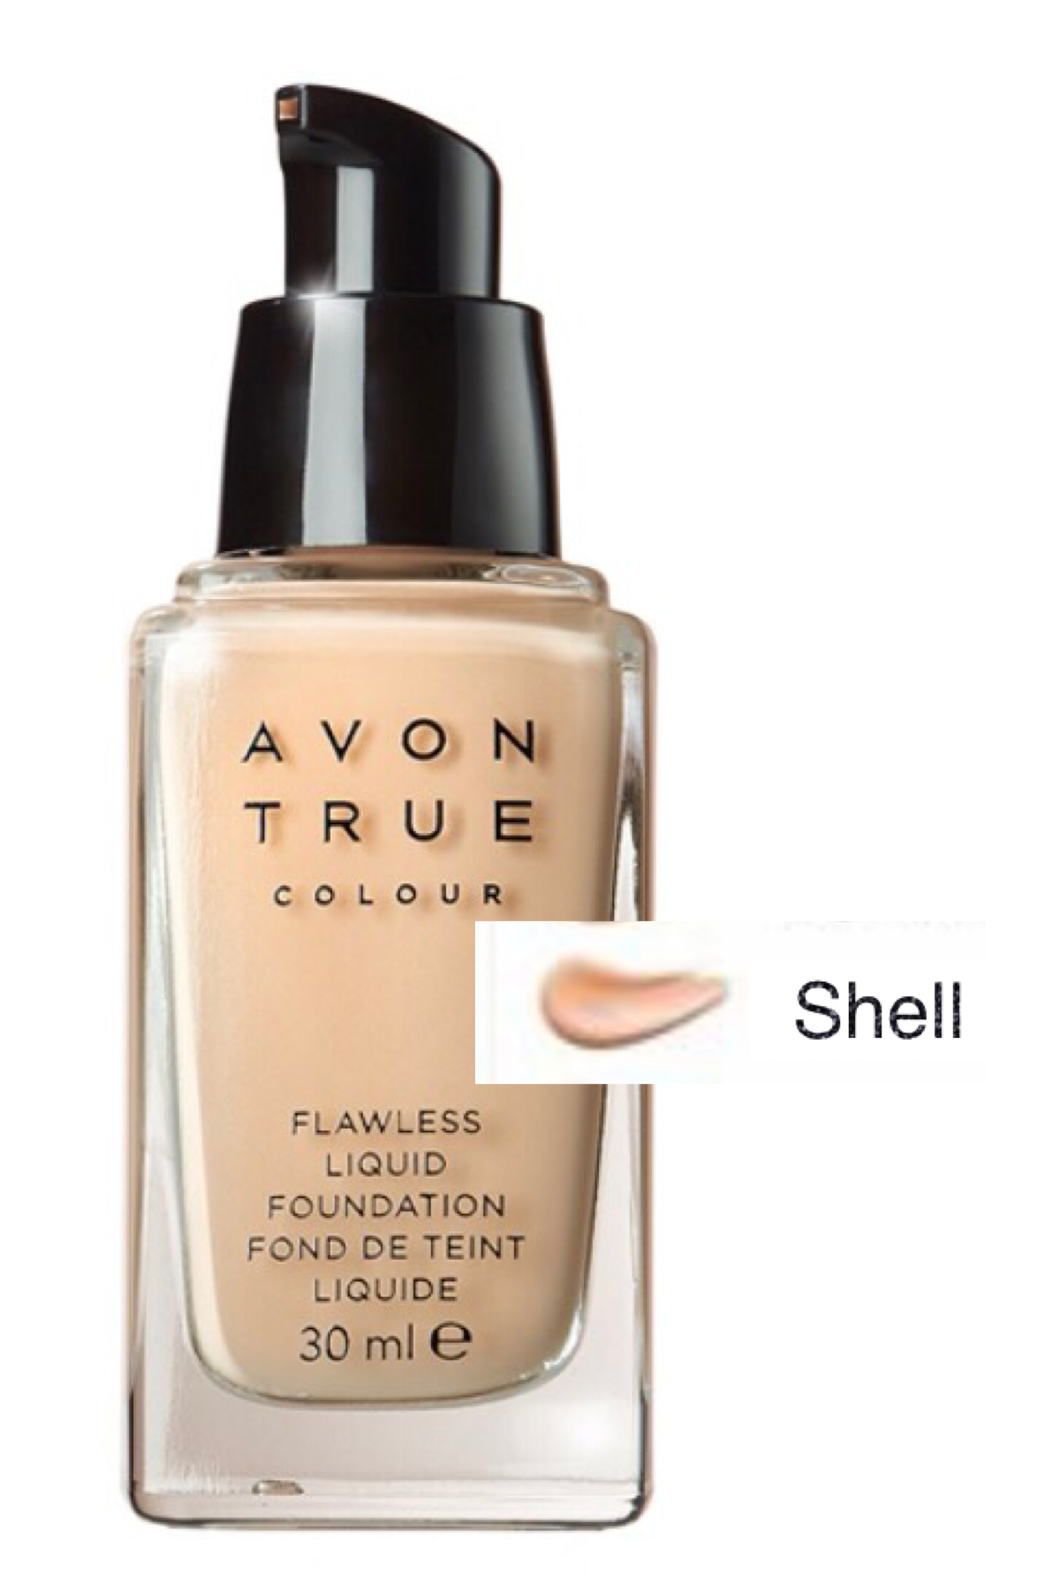 Shell Flawless Liquid Foundation 30ml